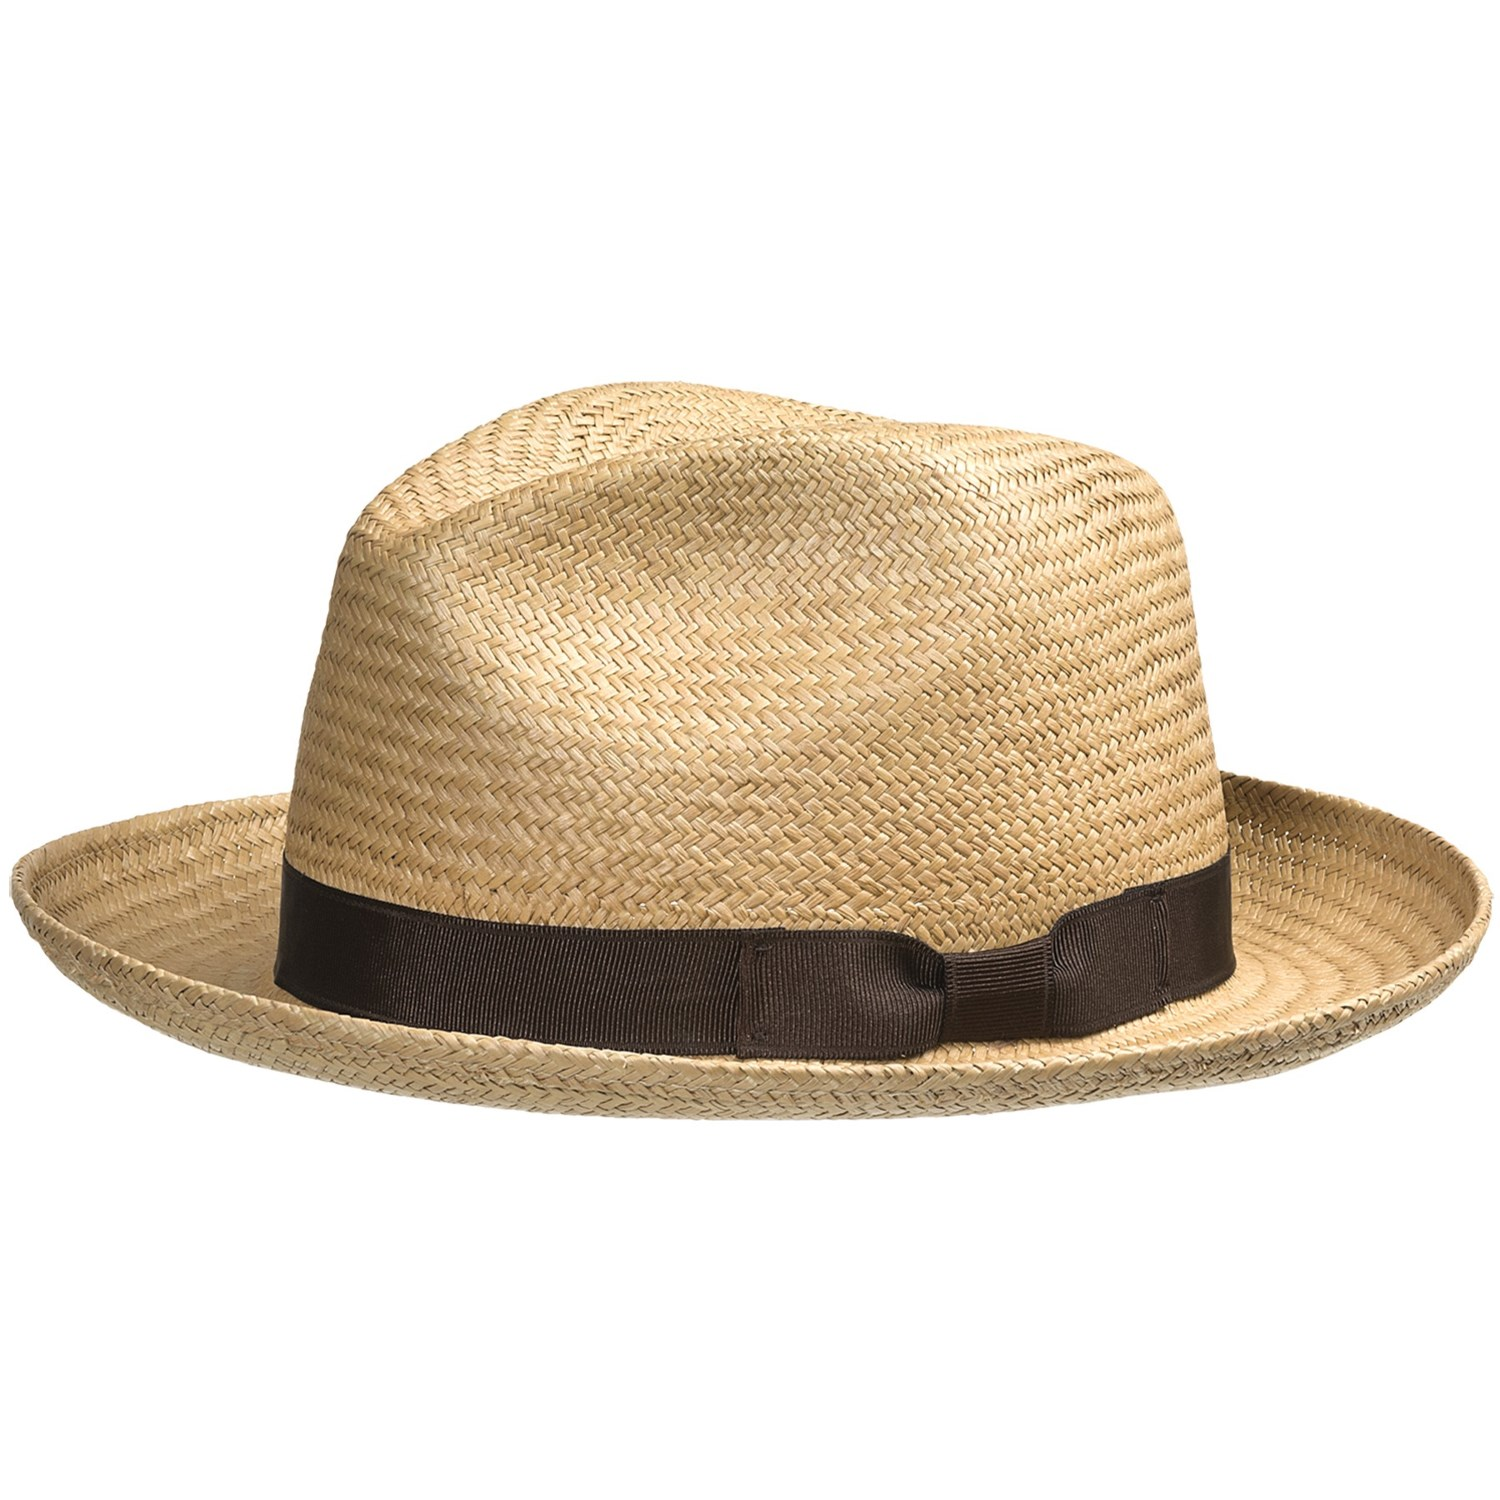 The fedora has traditionally been worn by men, but fedora hats for women are available too. Ladies fedora hats boast the same style features as those for men but are cut to fit the female head correctly.